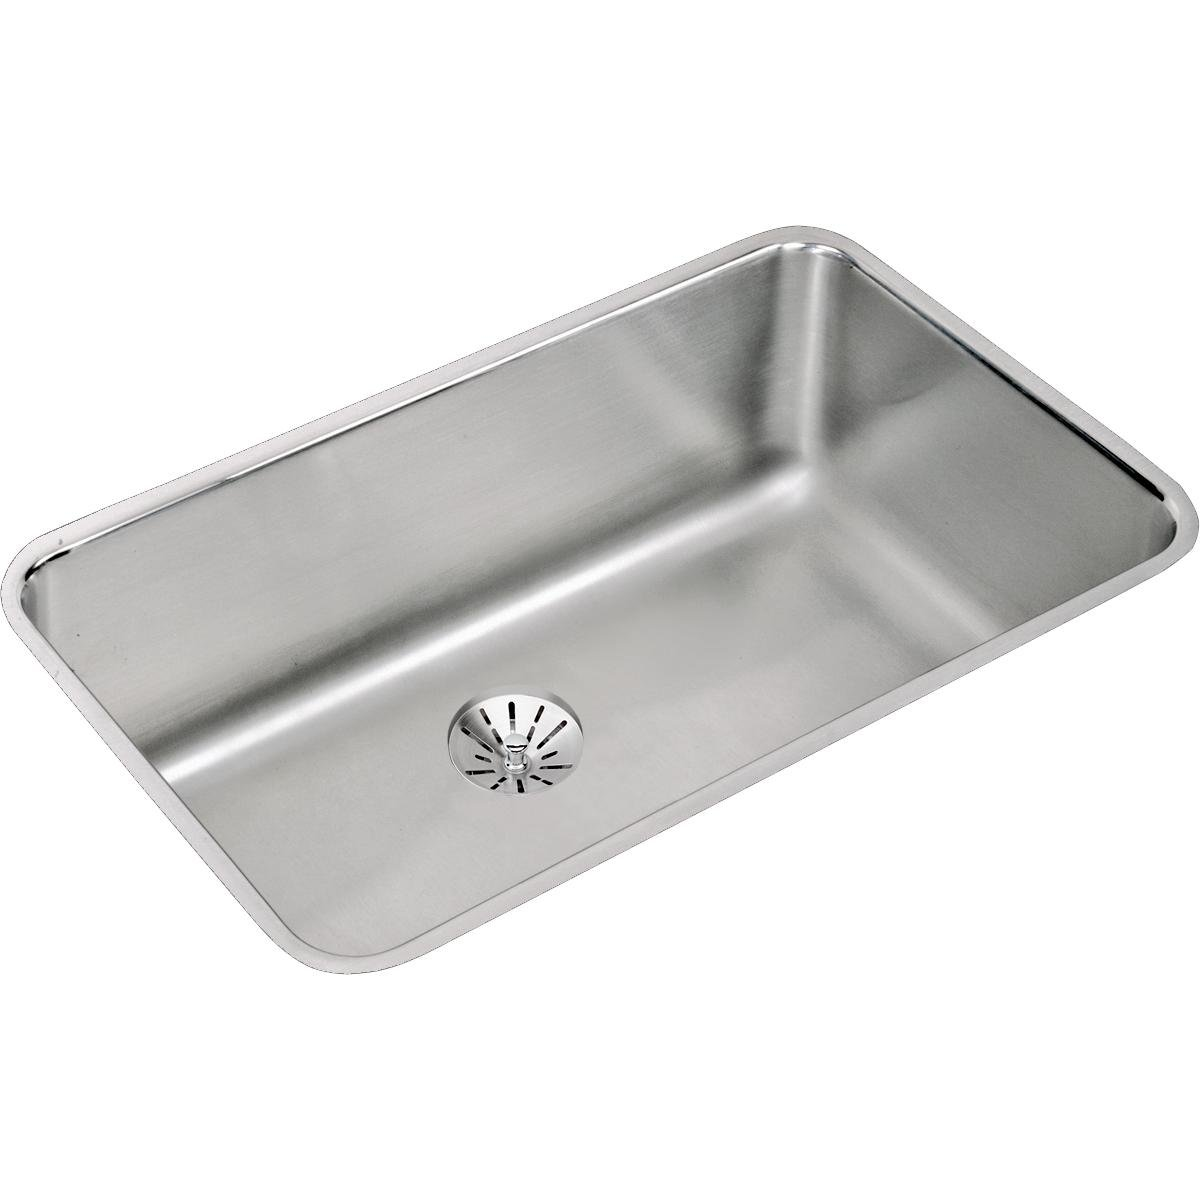 Elkay ELUH281610PD Lustertone Classic Single Bowl Undermount Stainless Steel Sink with Perfect Drain